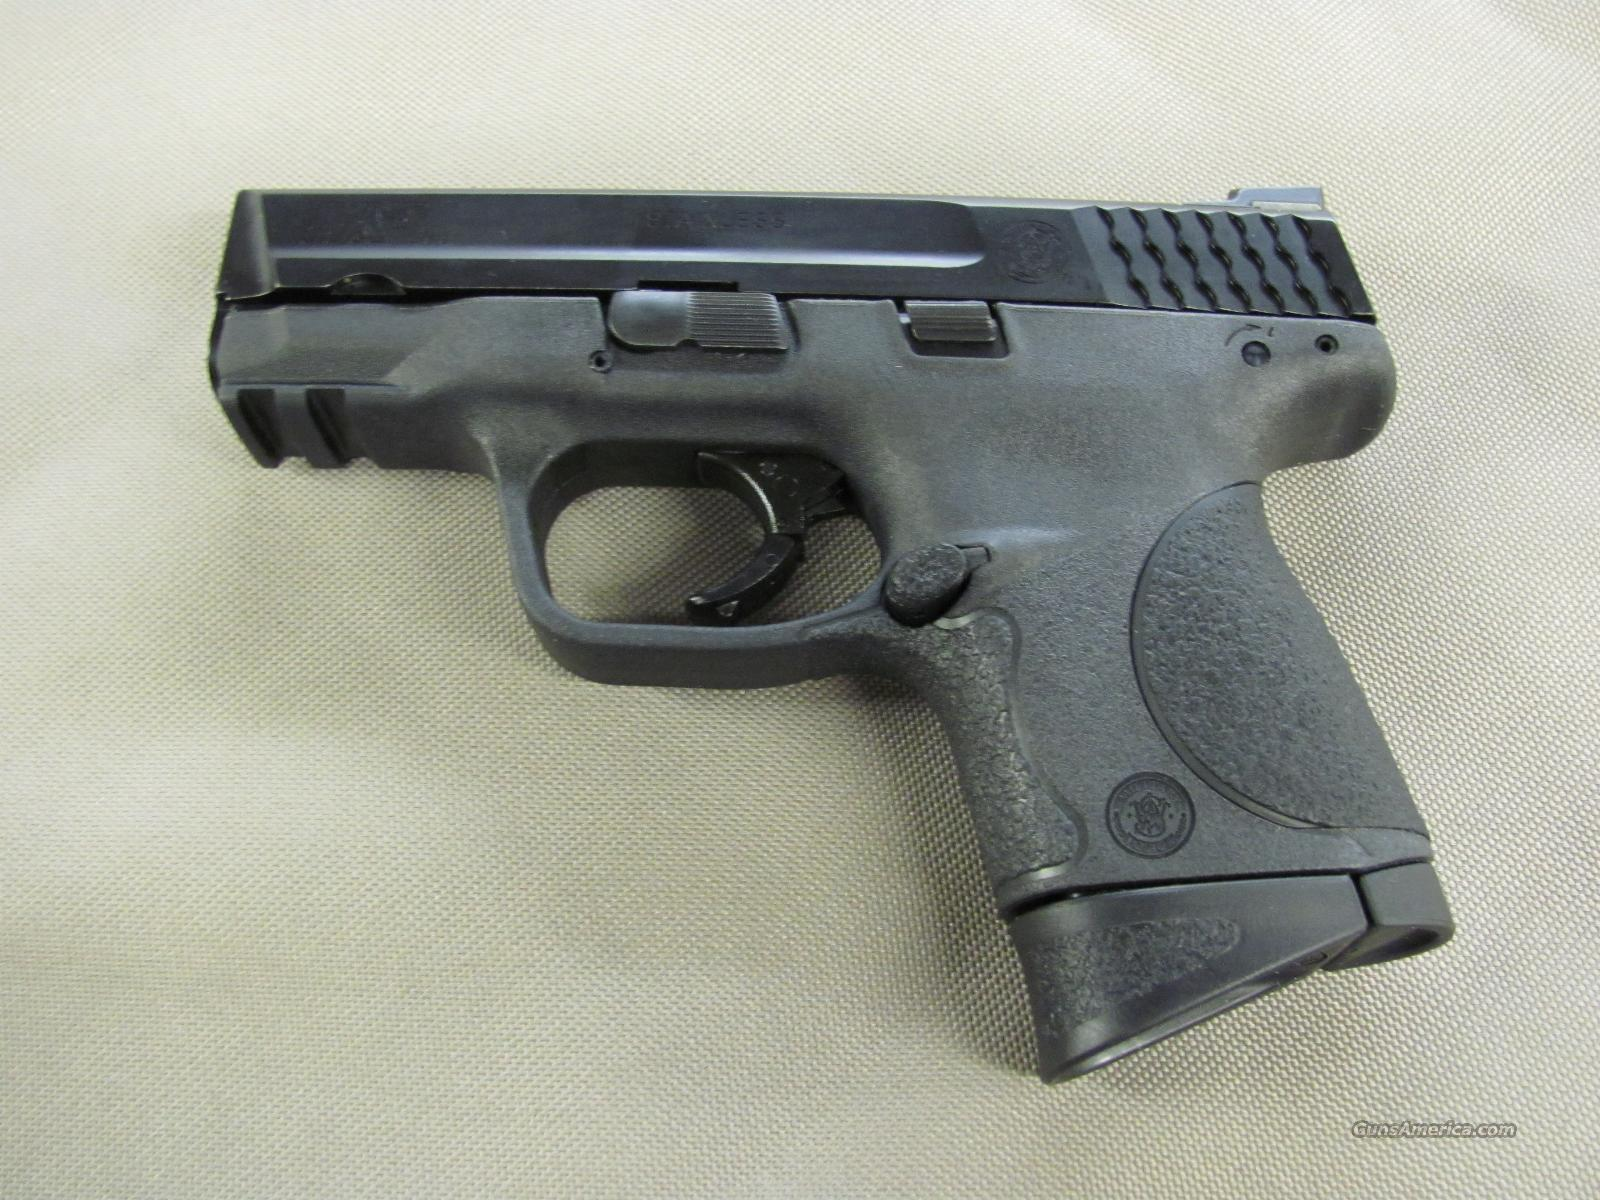 Smith & Wesson M&P 40c #109303  **NEW**  Guns > Pistols > Smith & Wesson Pistols - Autos > Polymer Frame